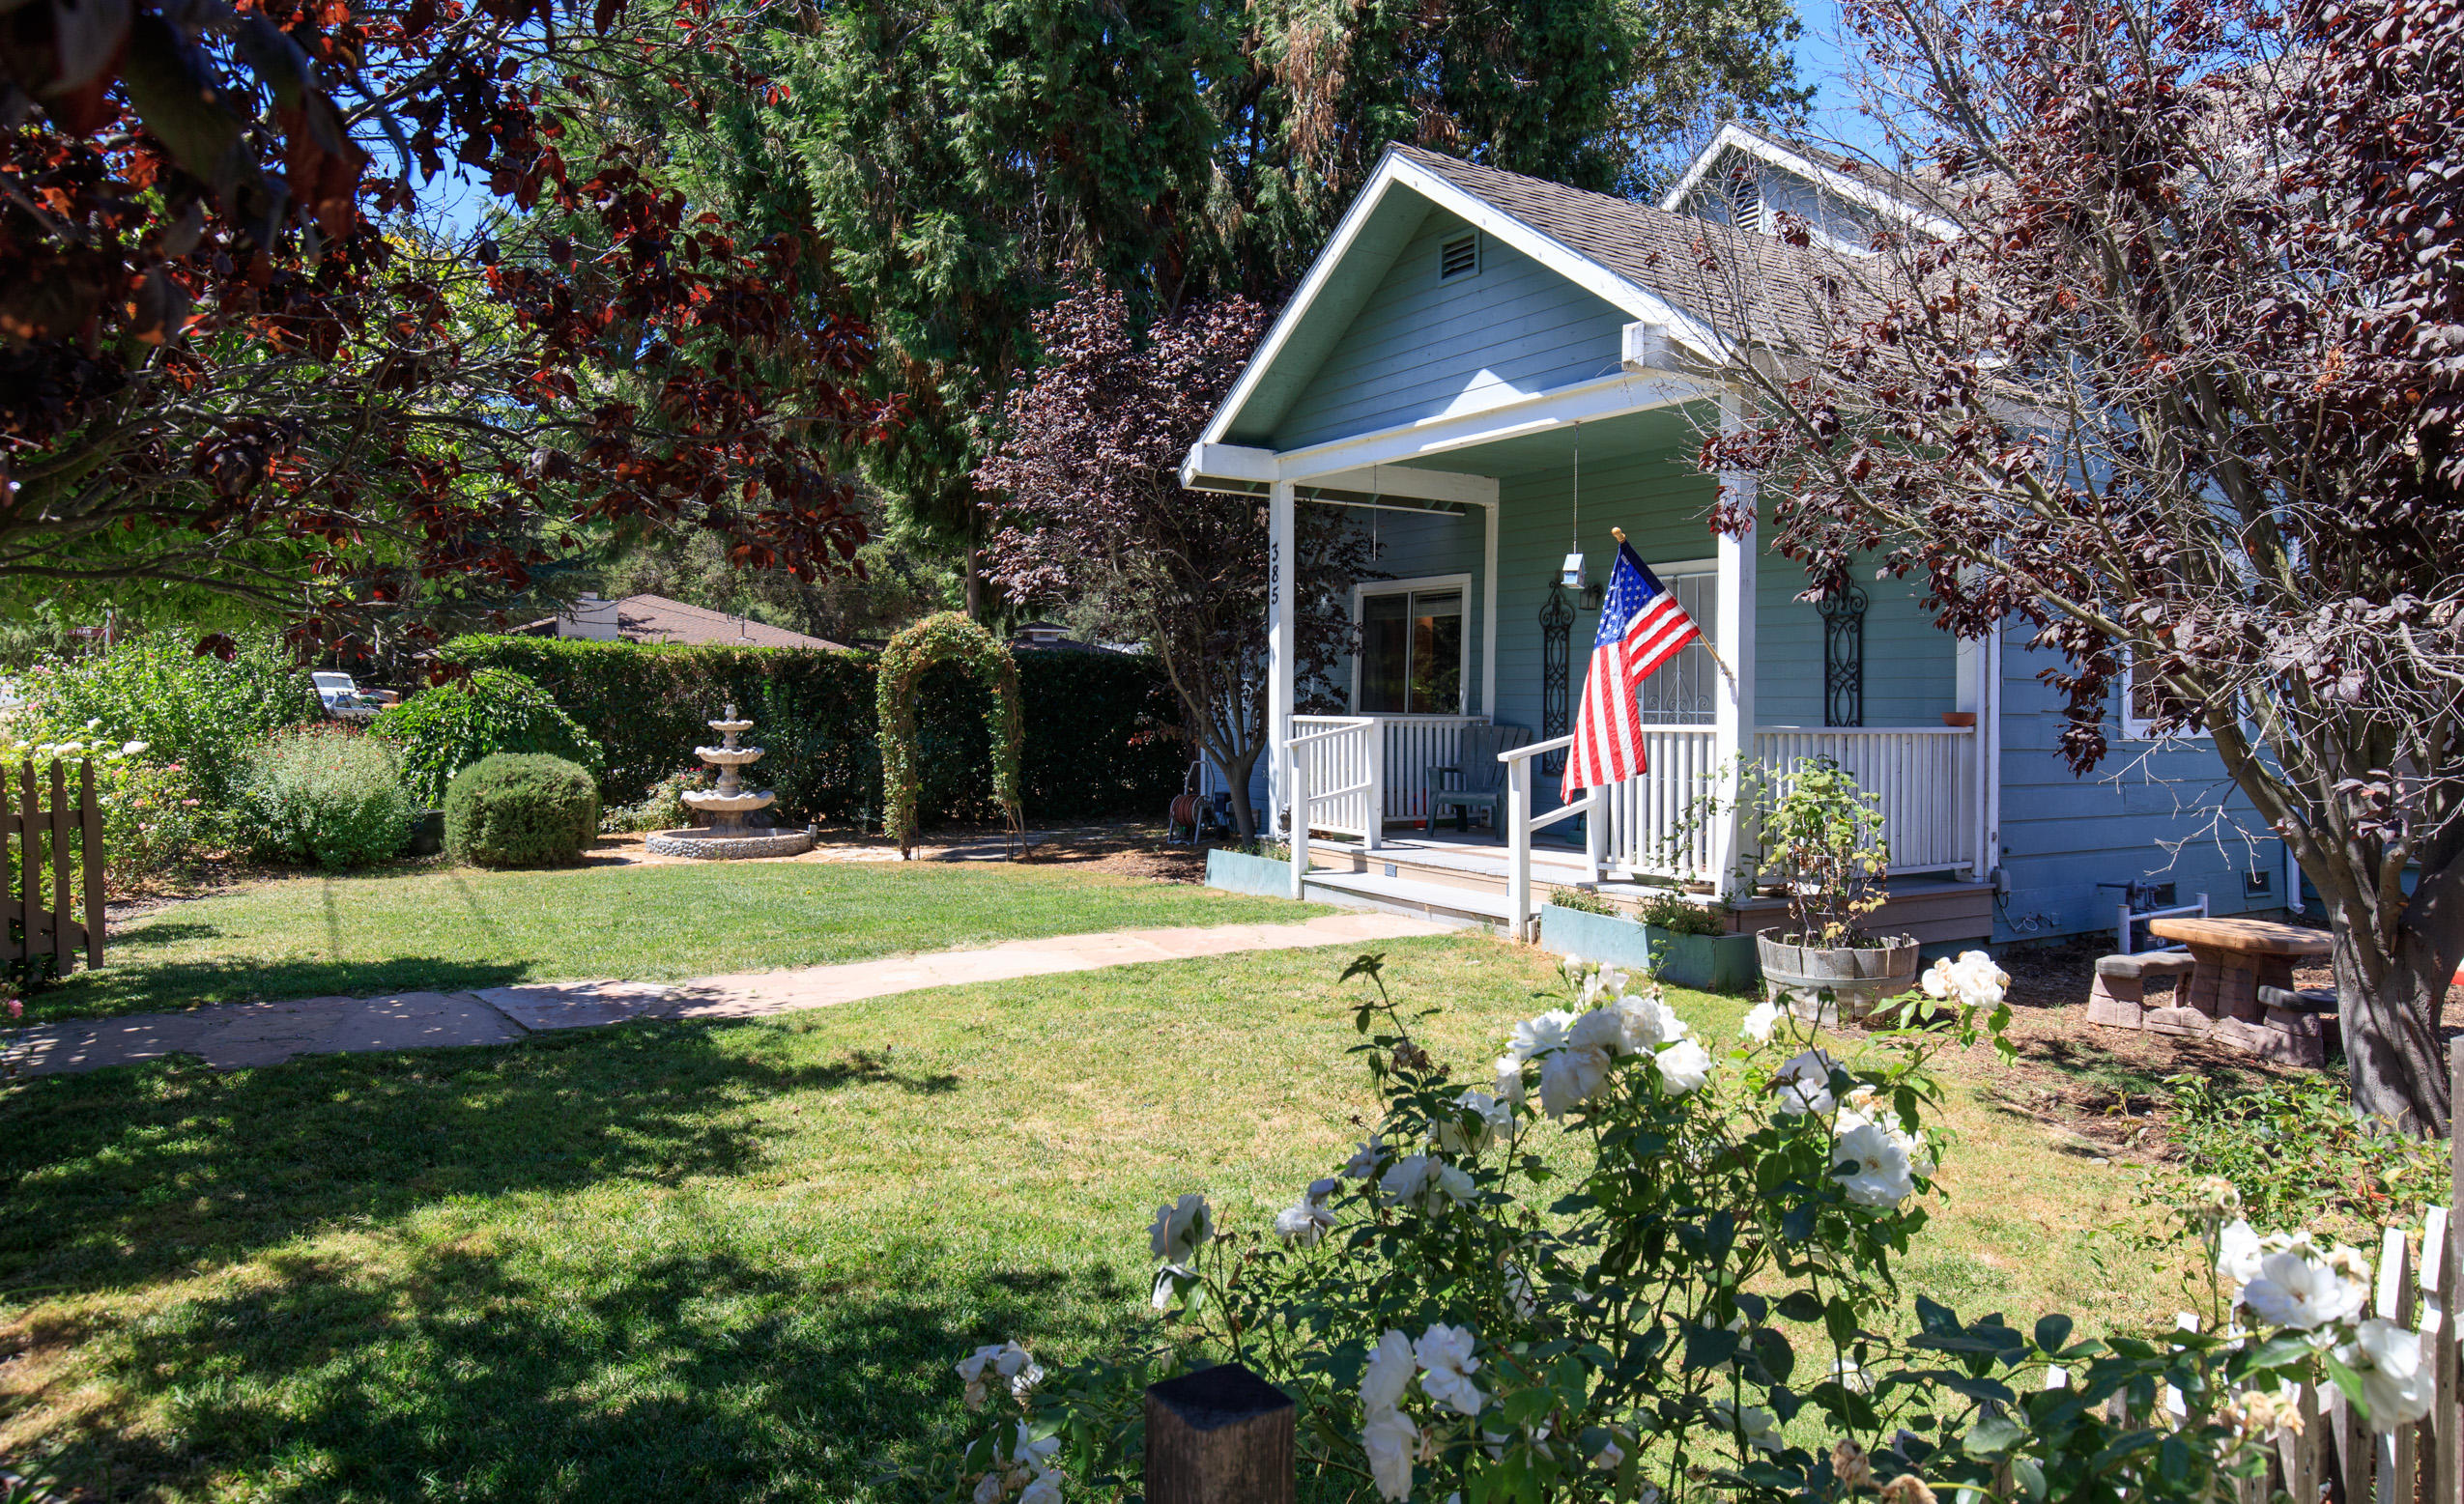 Property photo for 385 Centennial St Los Alamos, California 93440 - 16-2481